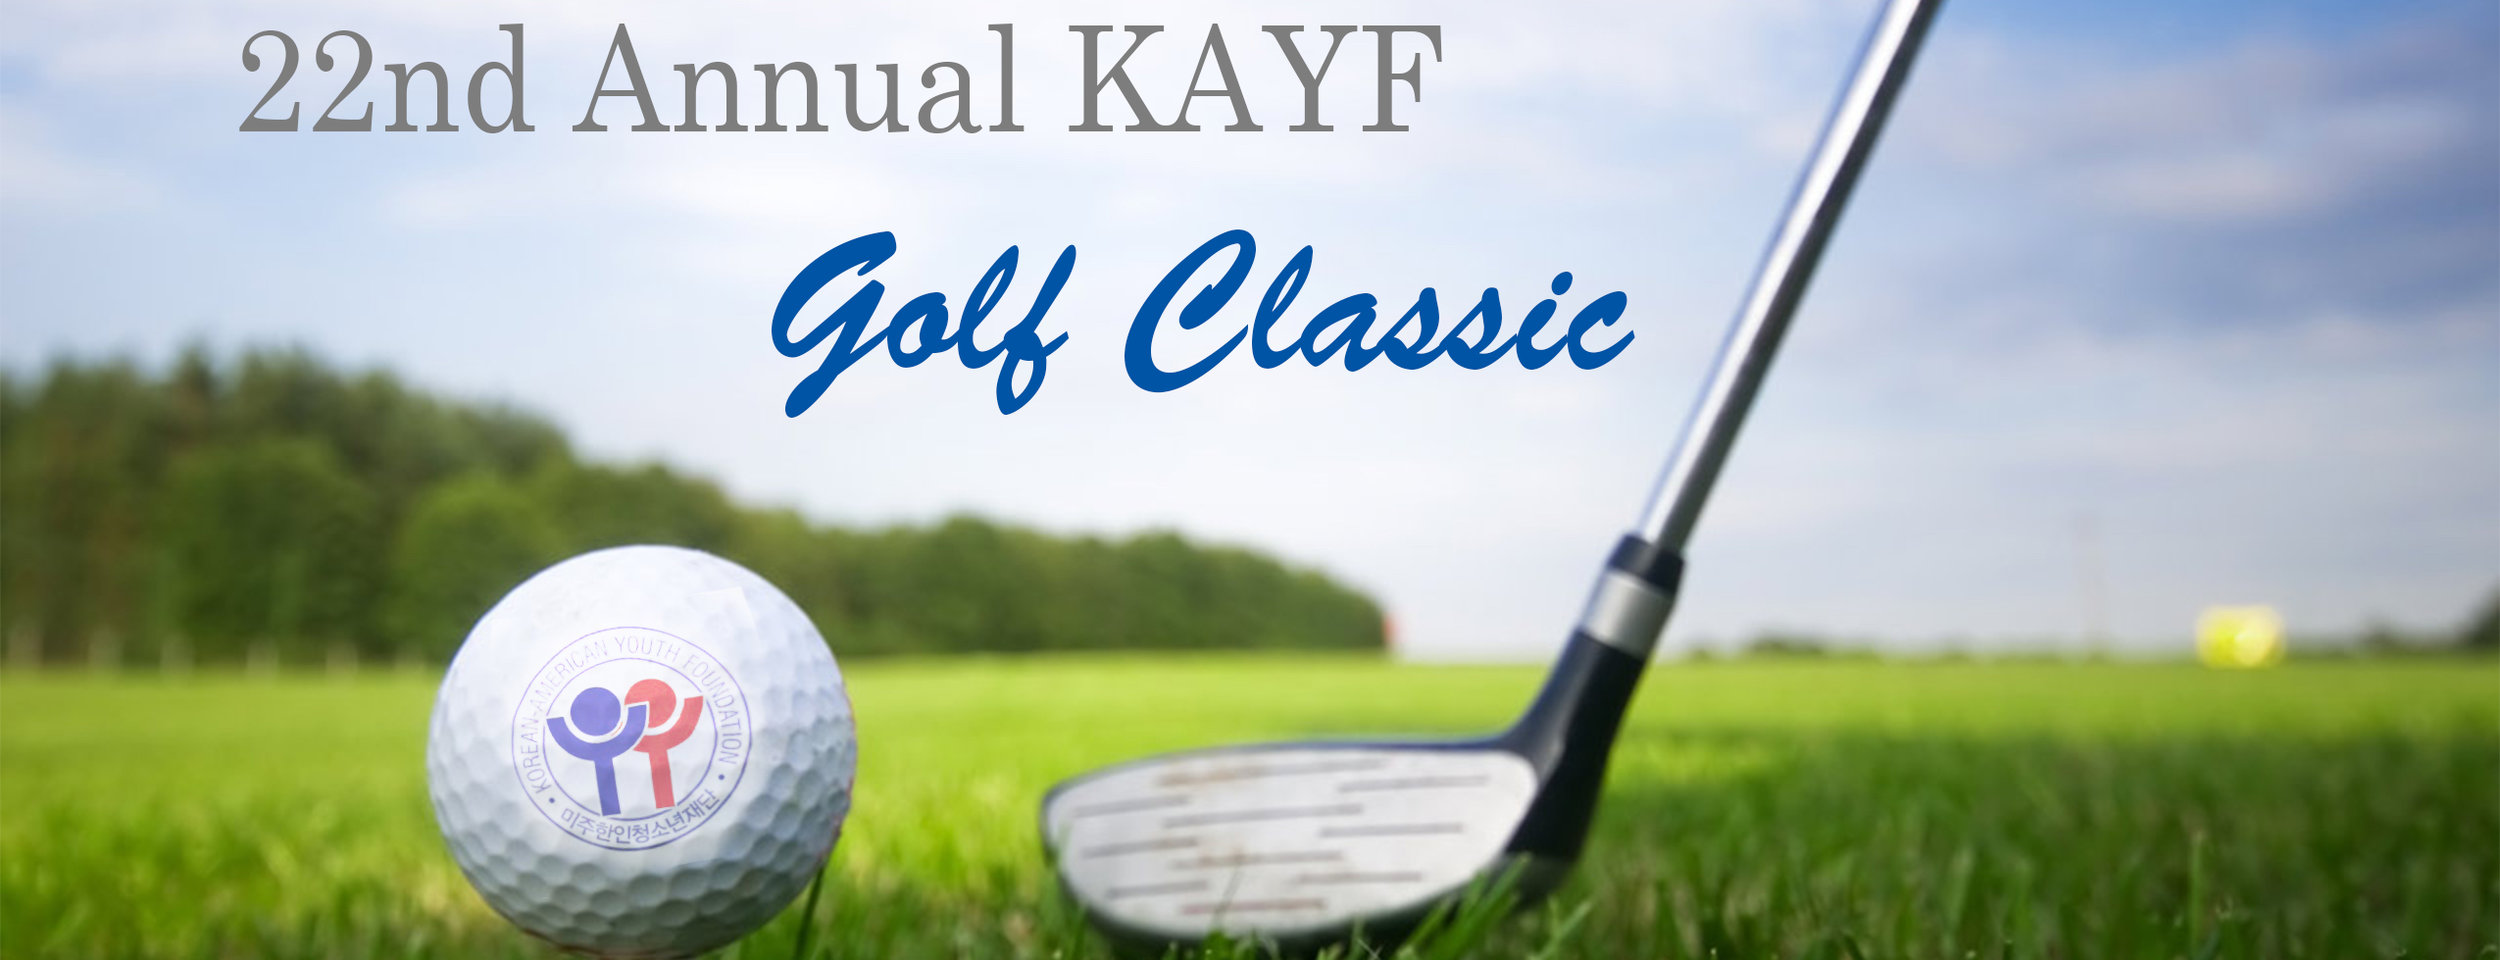 22nd Annual Golf Classic